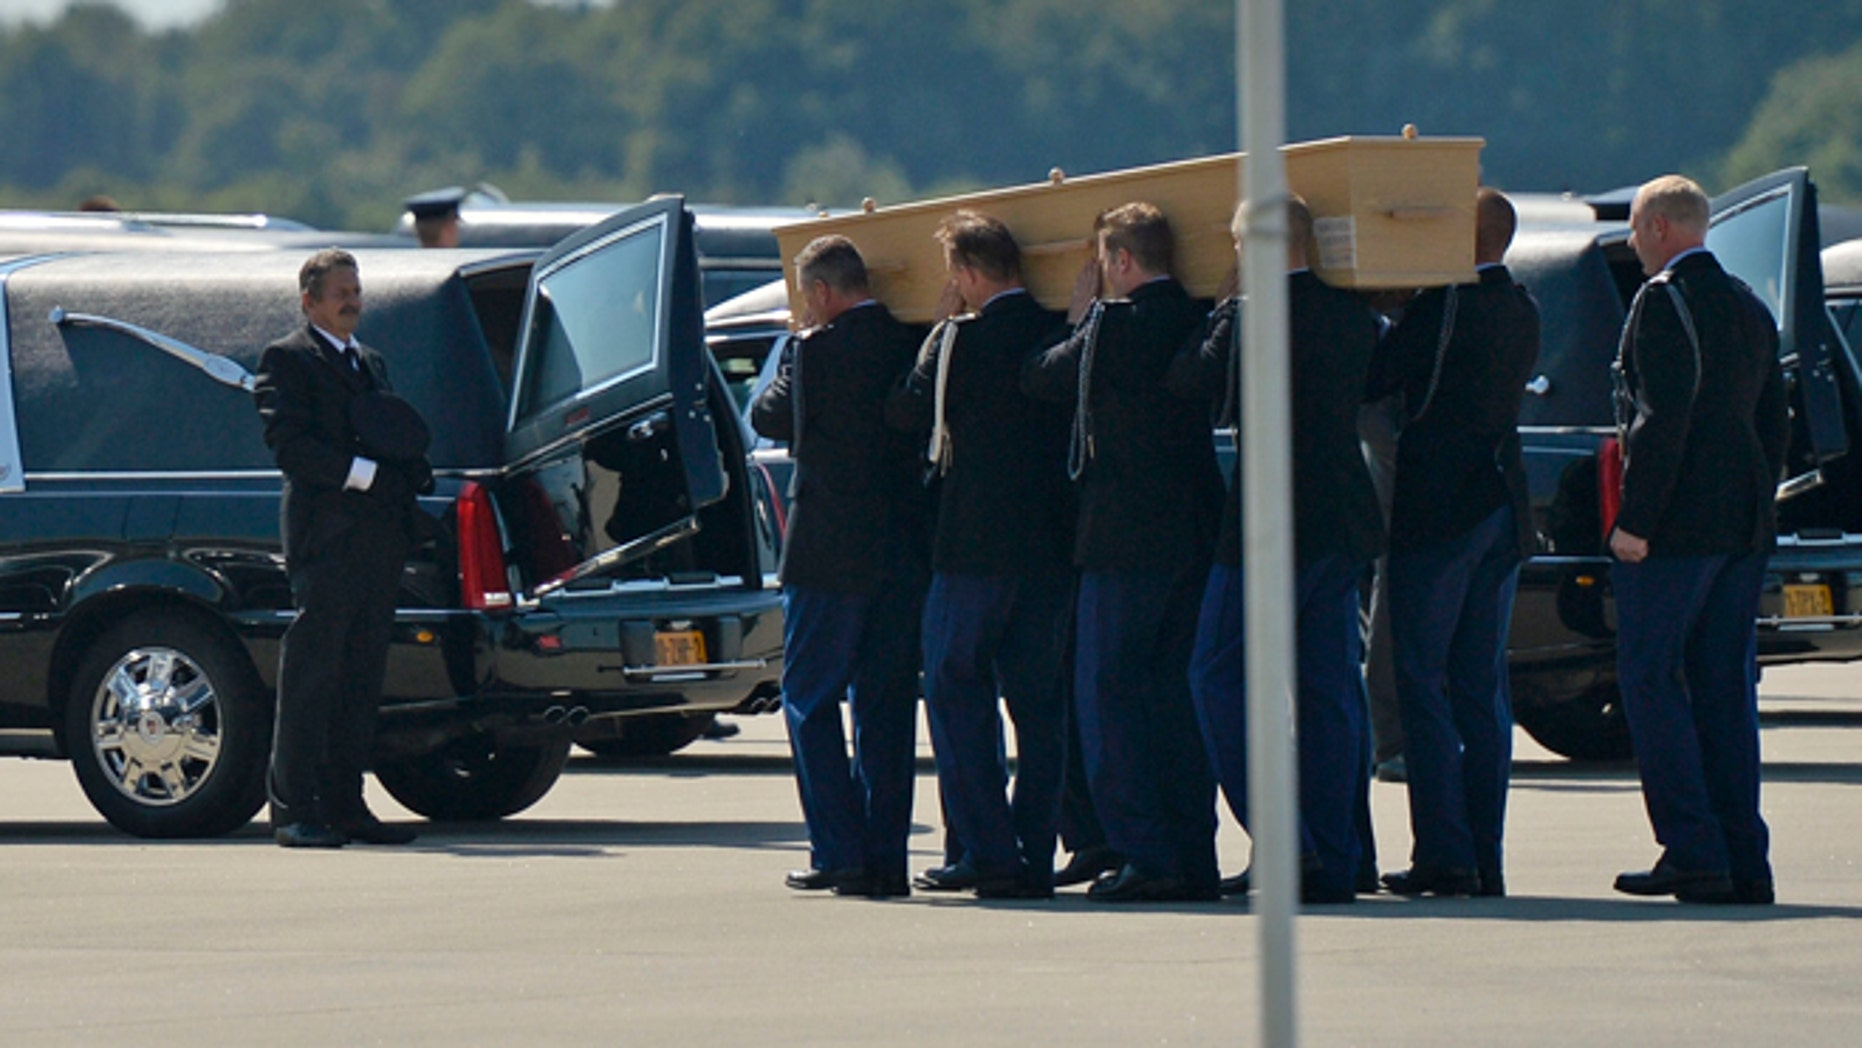 July 23, 2014: Soldiers load coffins into cars under a Ukrainian flag during a ceremony to mark the return of the first bodies, of passengers and crew killed in the downing of Malaysia Airlines Flight 17, from Ukraine at Eindhoven military air base.